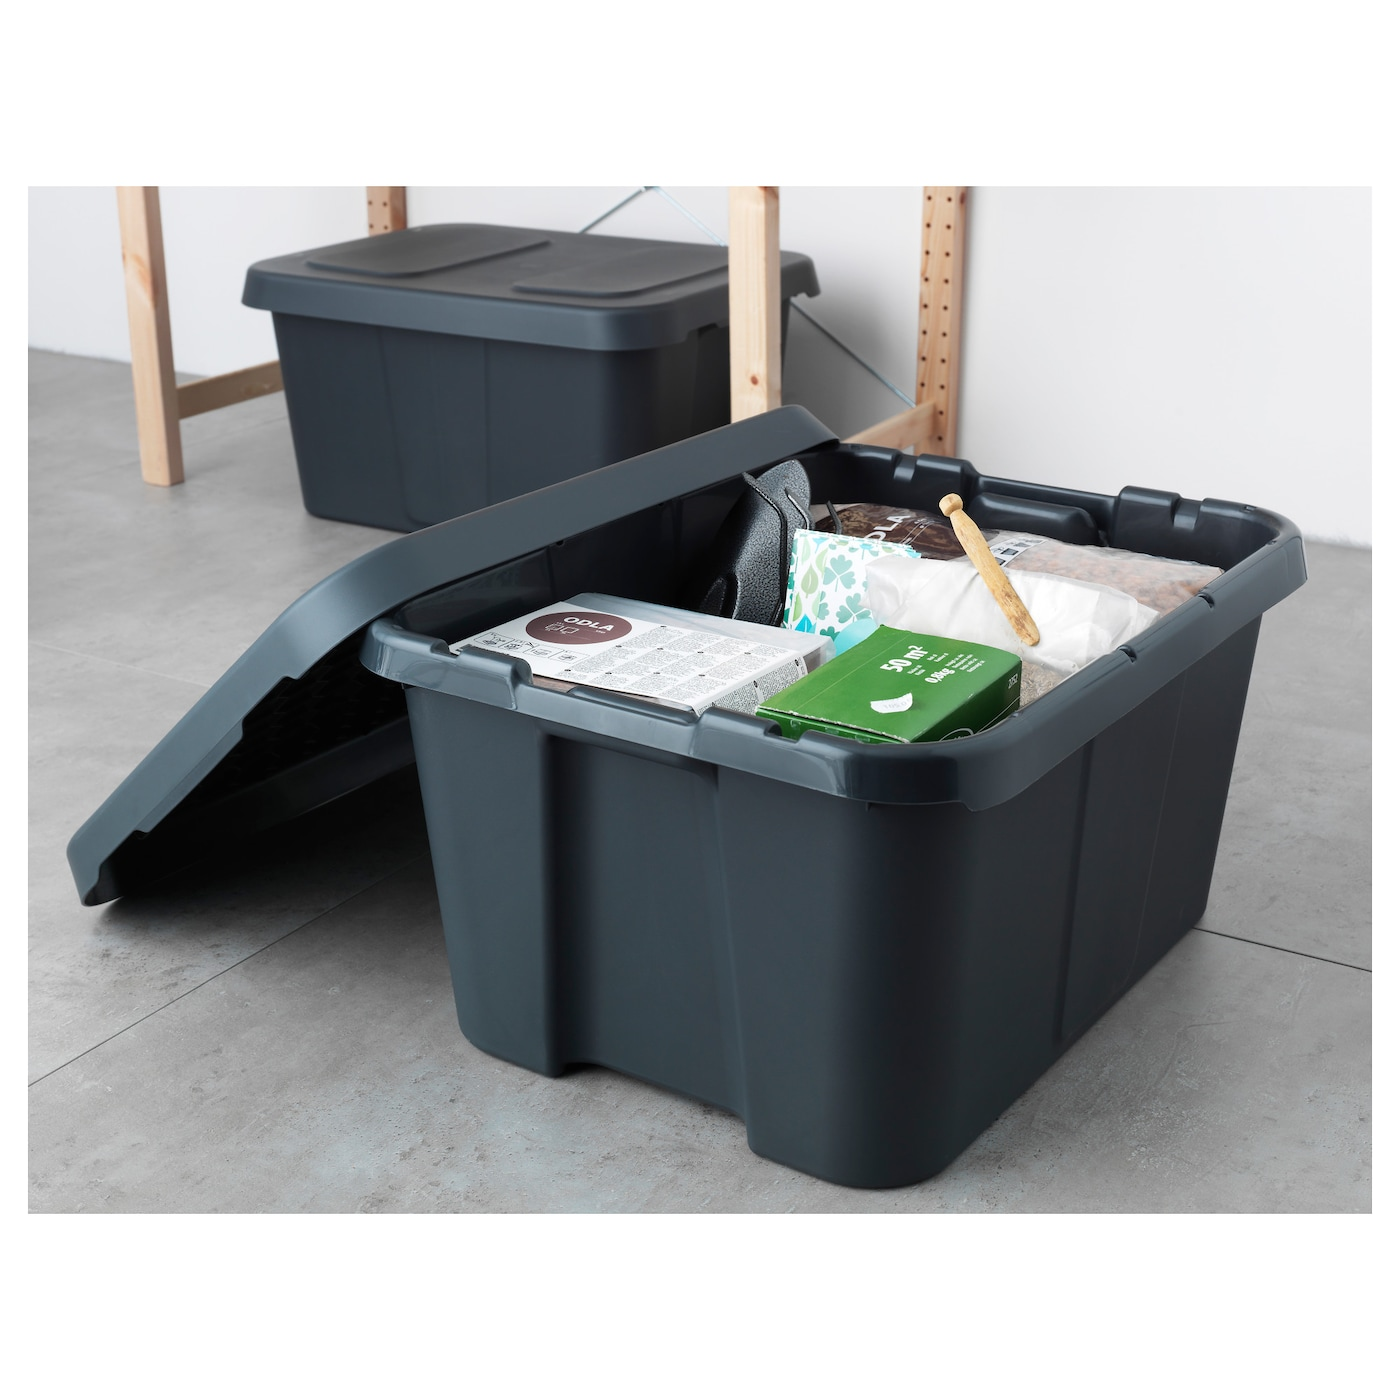 Kl Mtare Box With Lid In Outdoor Dark Grey 58x45x30 Cm Ikea